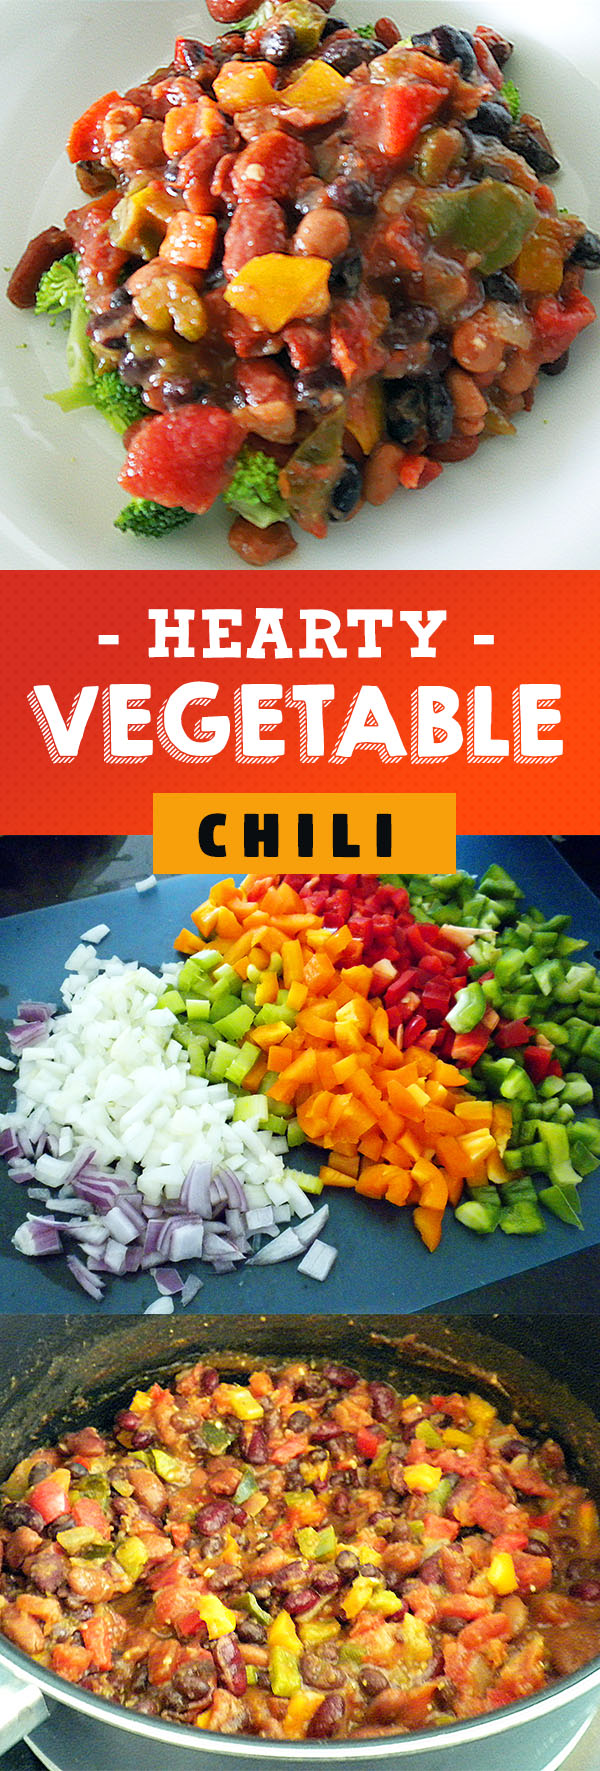 Hearty Vegetable Chili - A vegan option even meat lovers will enjoy for dinner